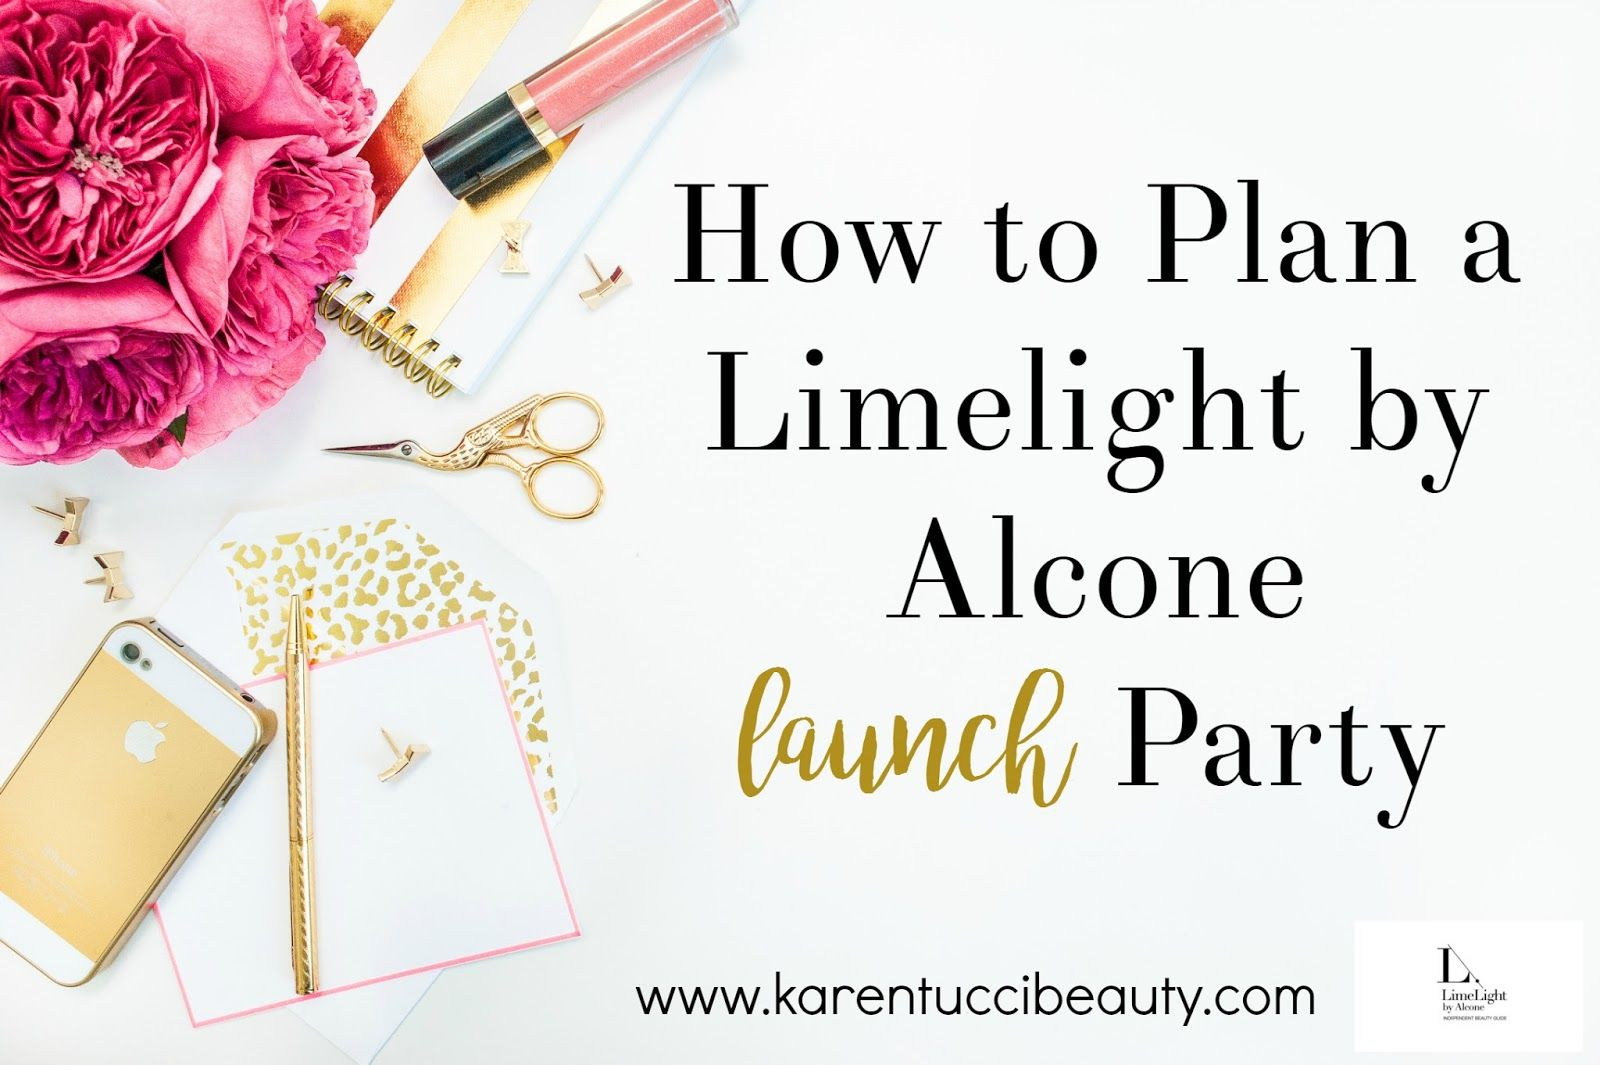 How to Plan a Direct Sales Launch Party (With images